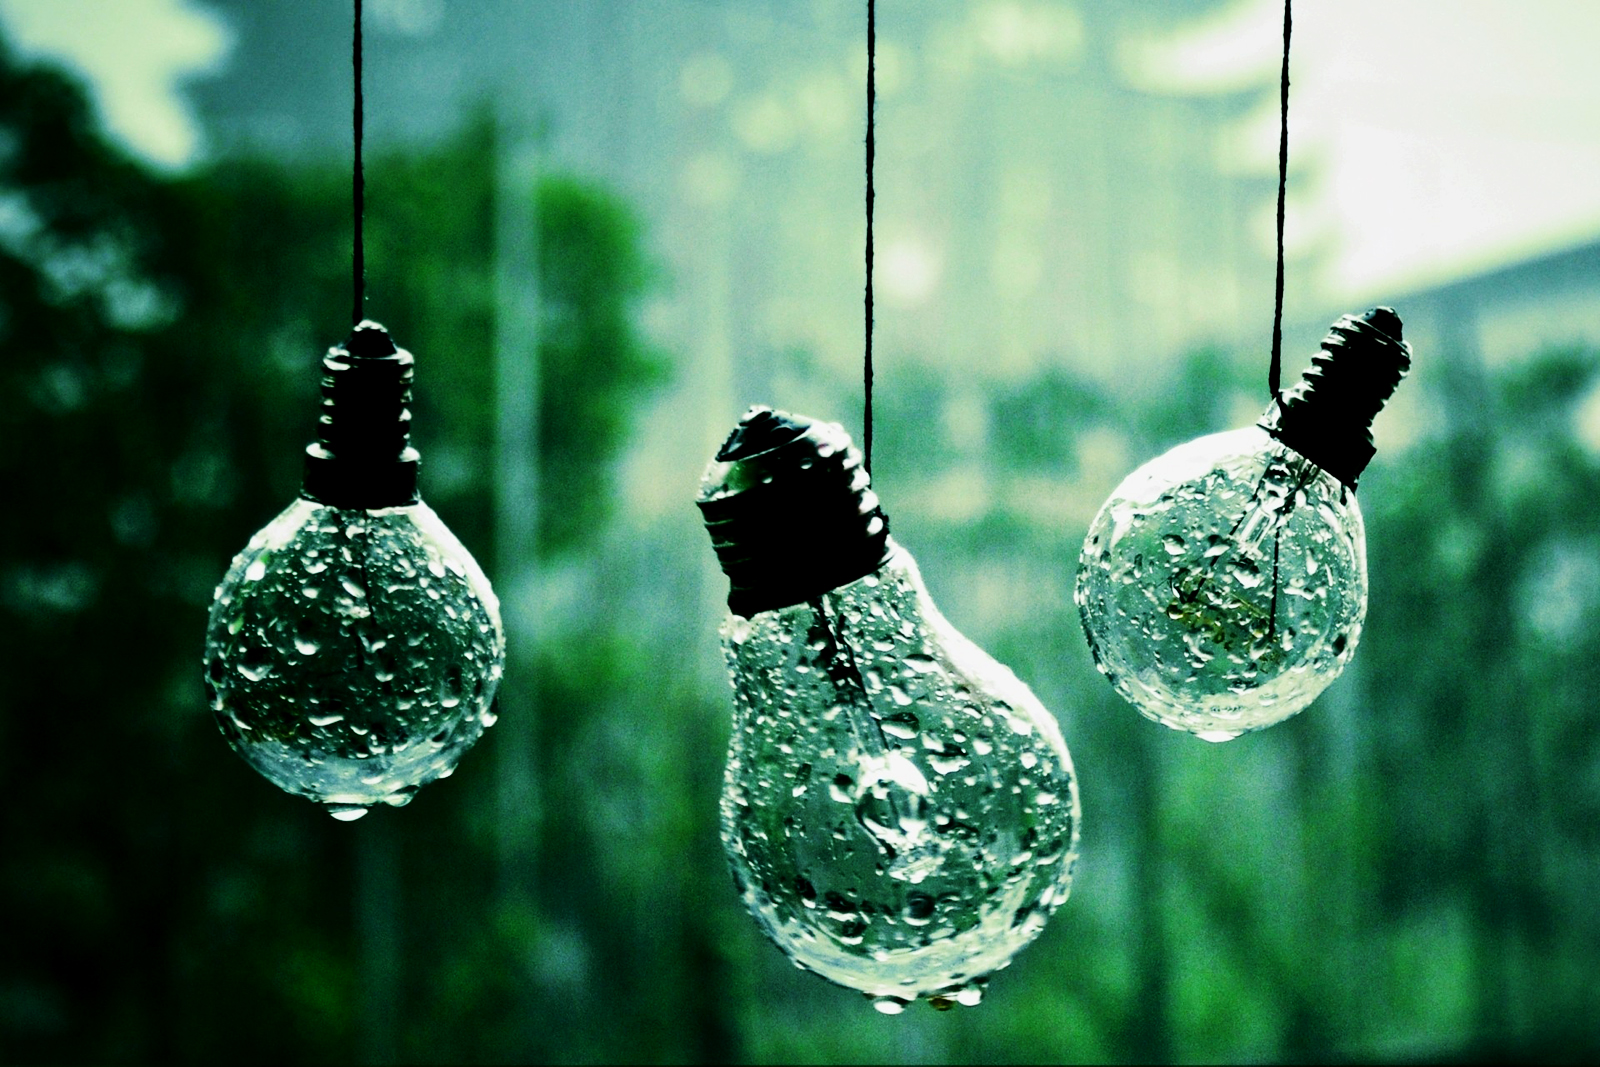 Light Bulb HD Wallpapers Stock Photos| HD Wallpapers ,Backgrounds ,Photos ,Pictures, Image ,PC